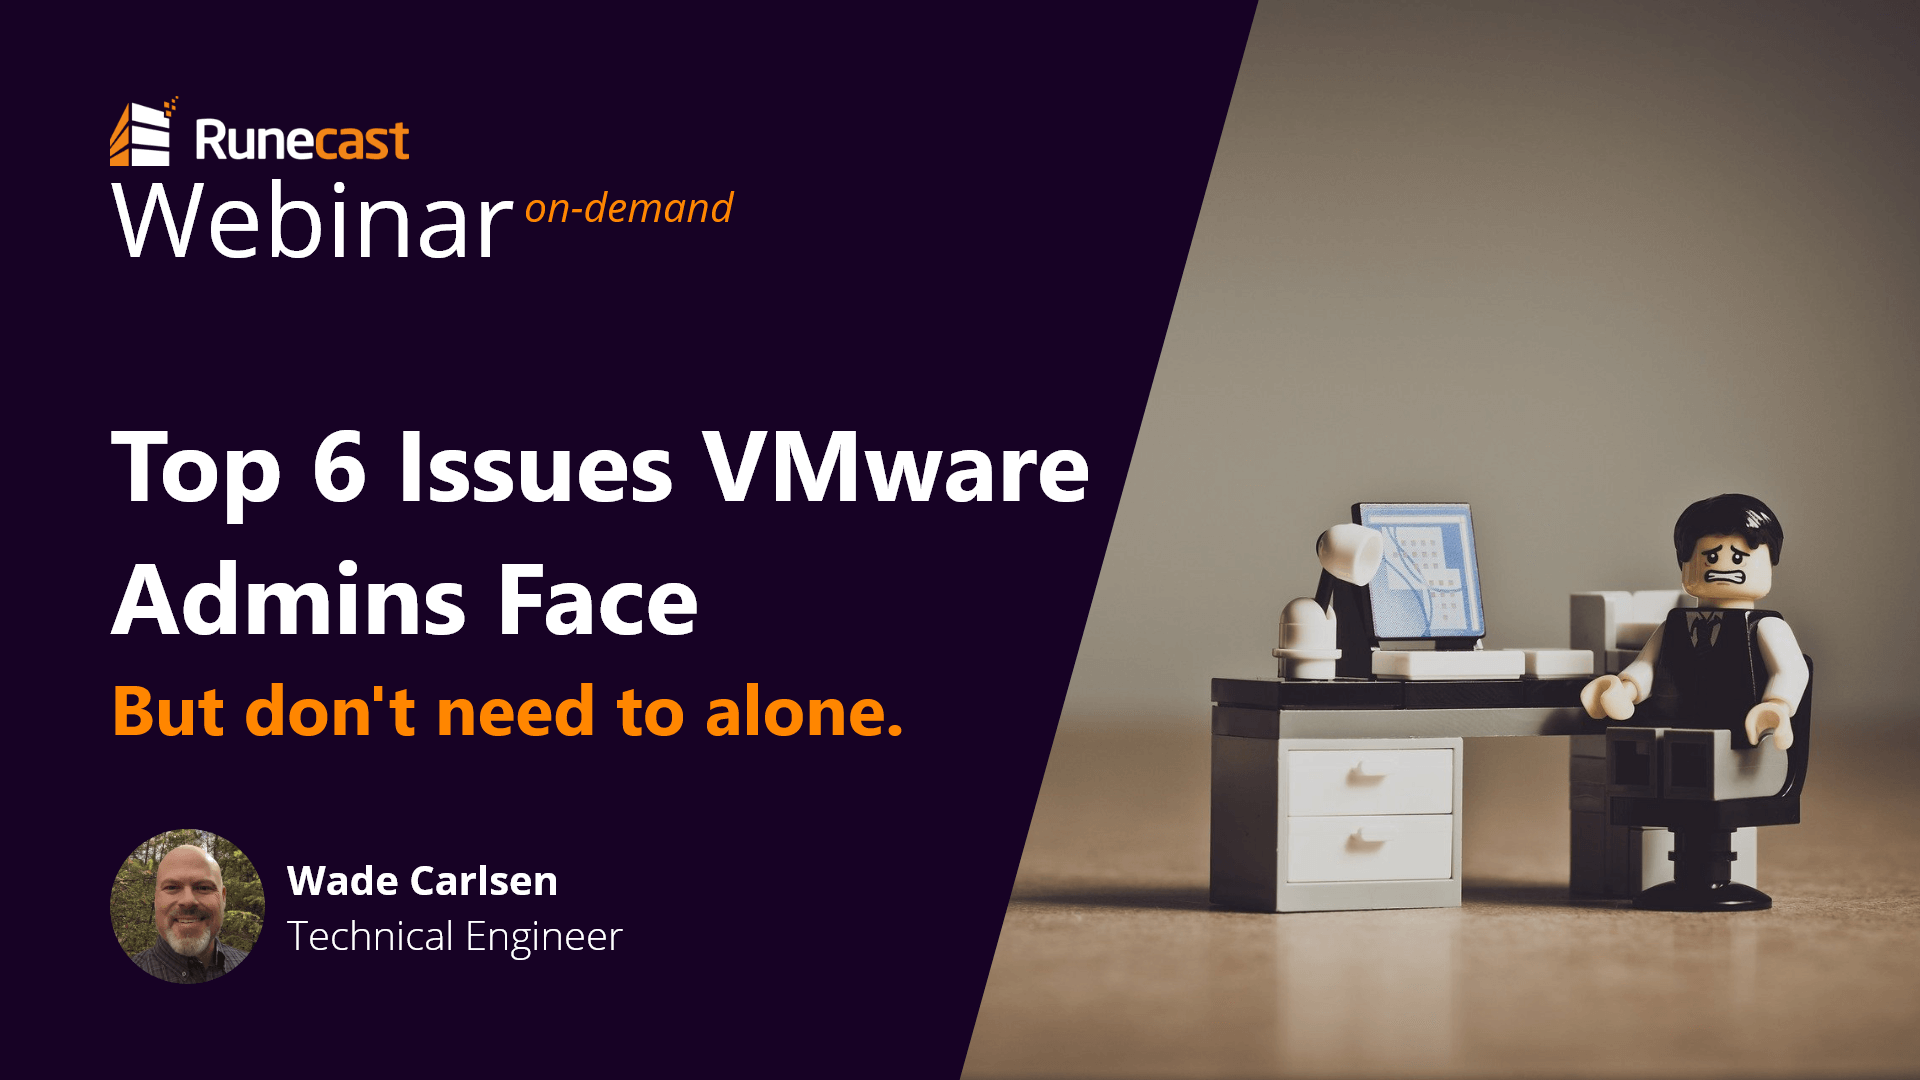 Top 6 Issues VMware Admins Face